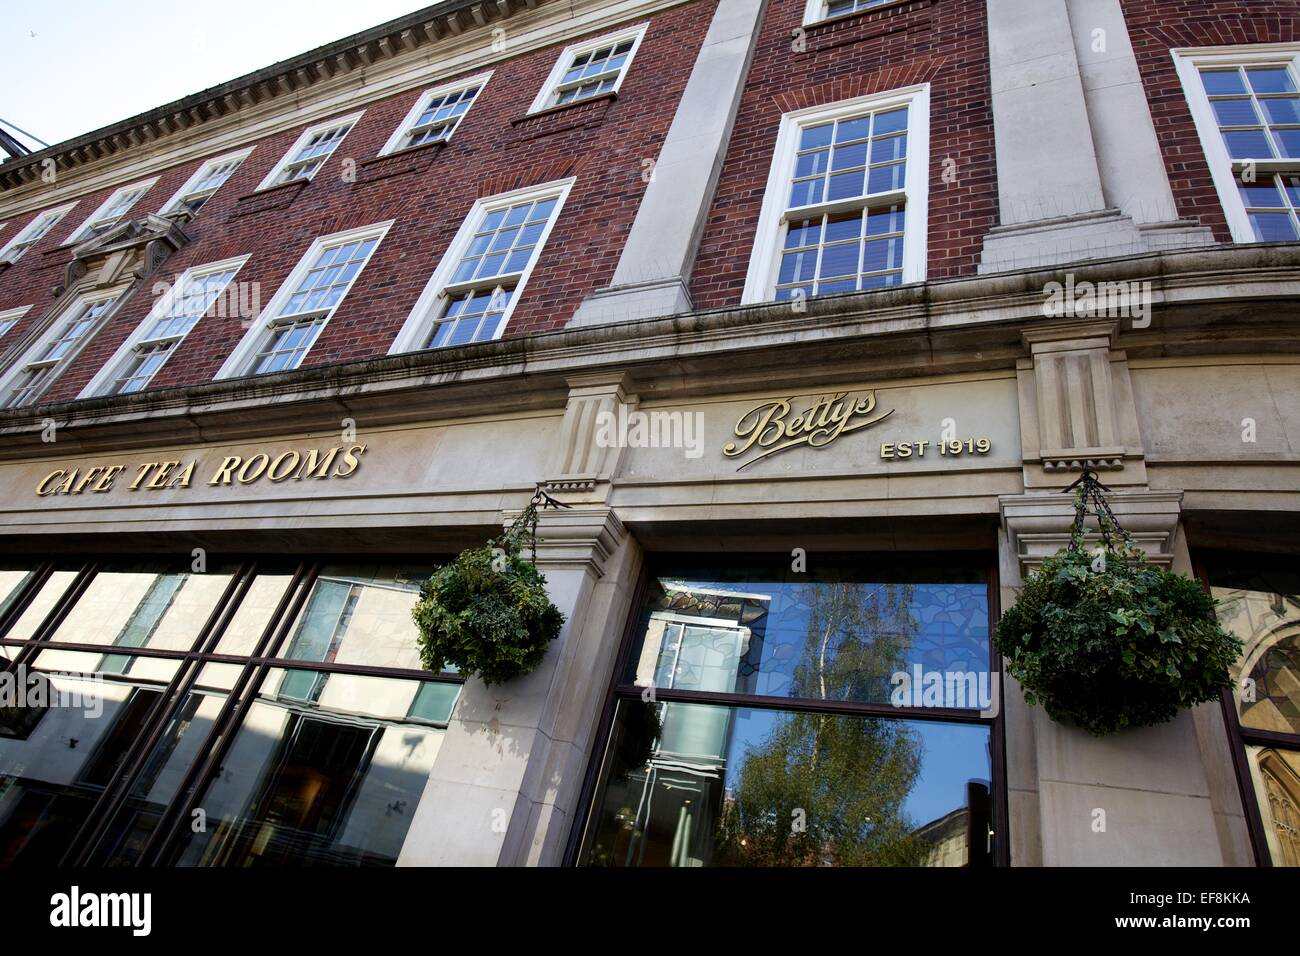 Betty's tea rooms in York - Stock Image